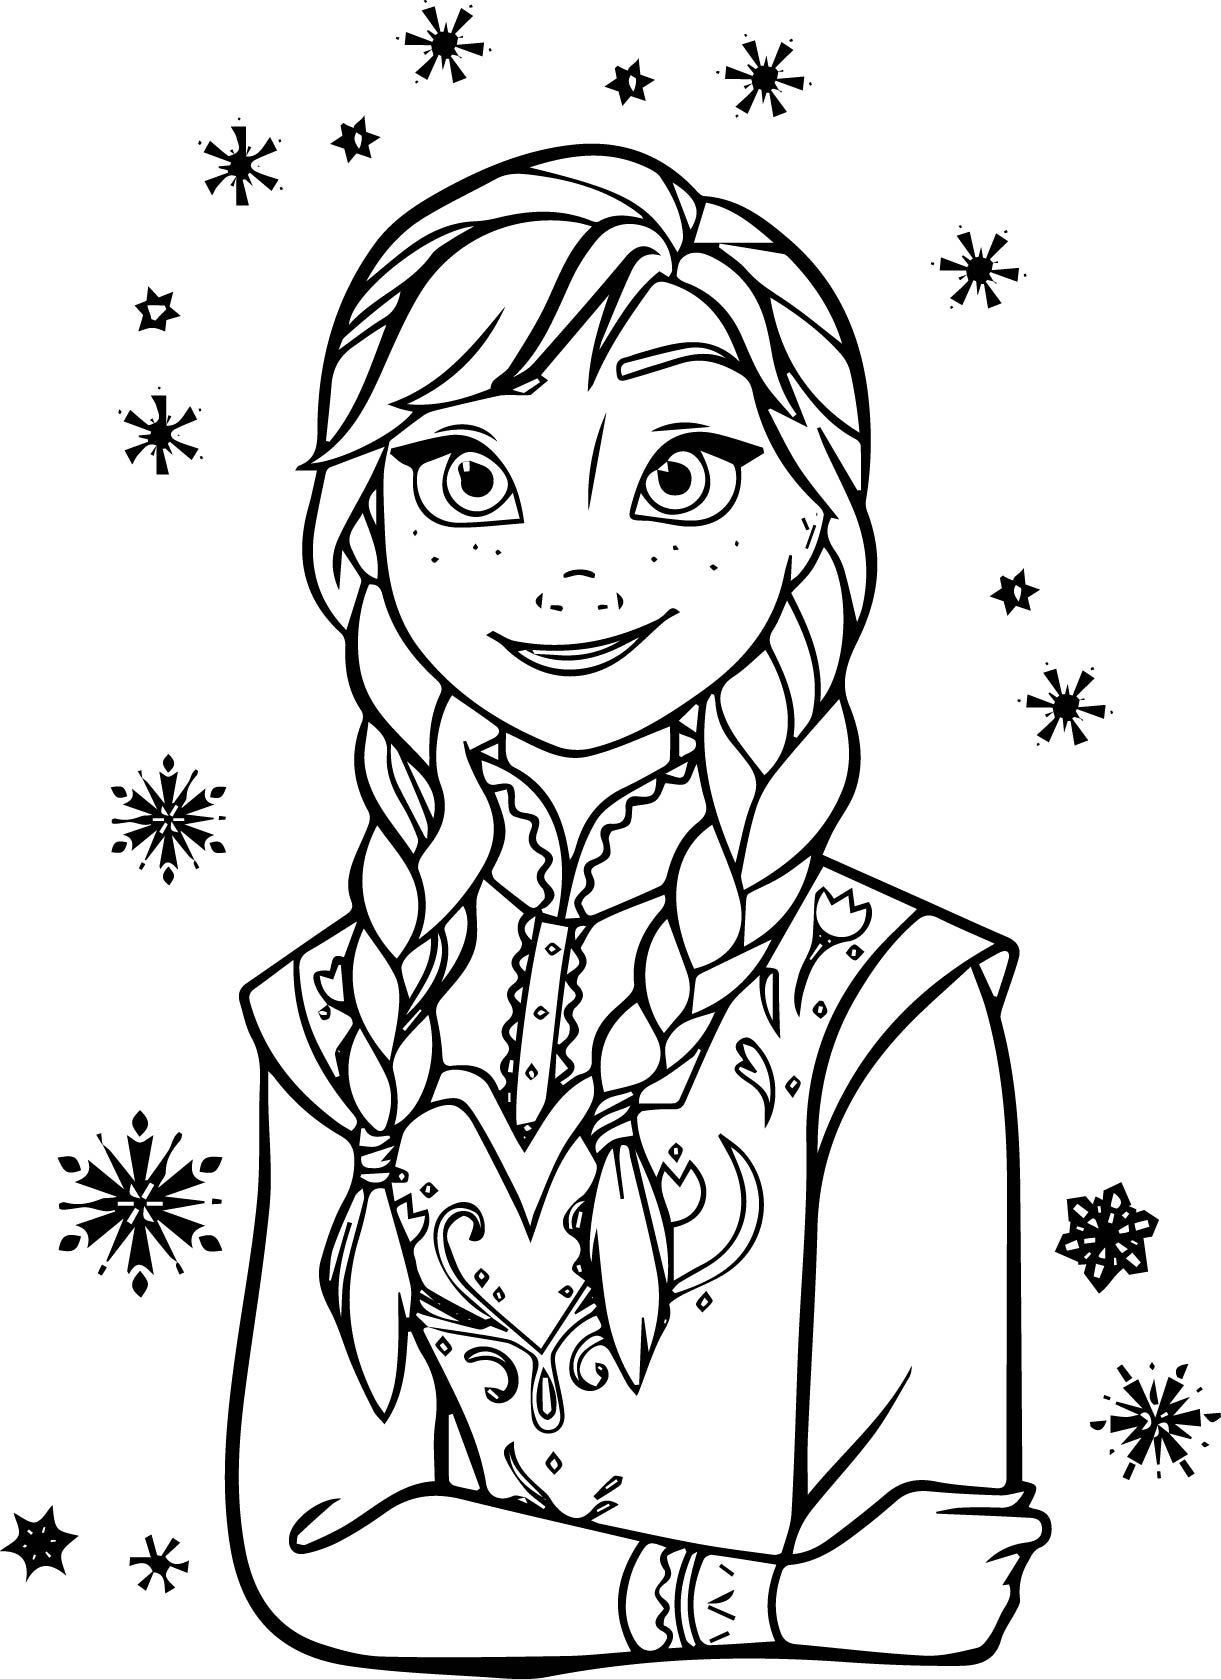 Coloring Pages For Kids Elsa Coloring Pages Frozen Anna Coloring To Print Mir Chudes In 2020 Elsa Coloring Pages Frozen Coloring Pages Frozen Coloring